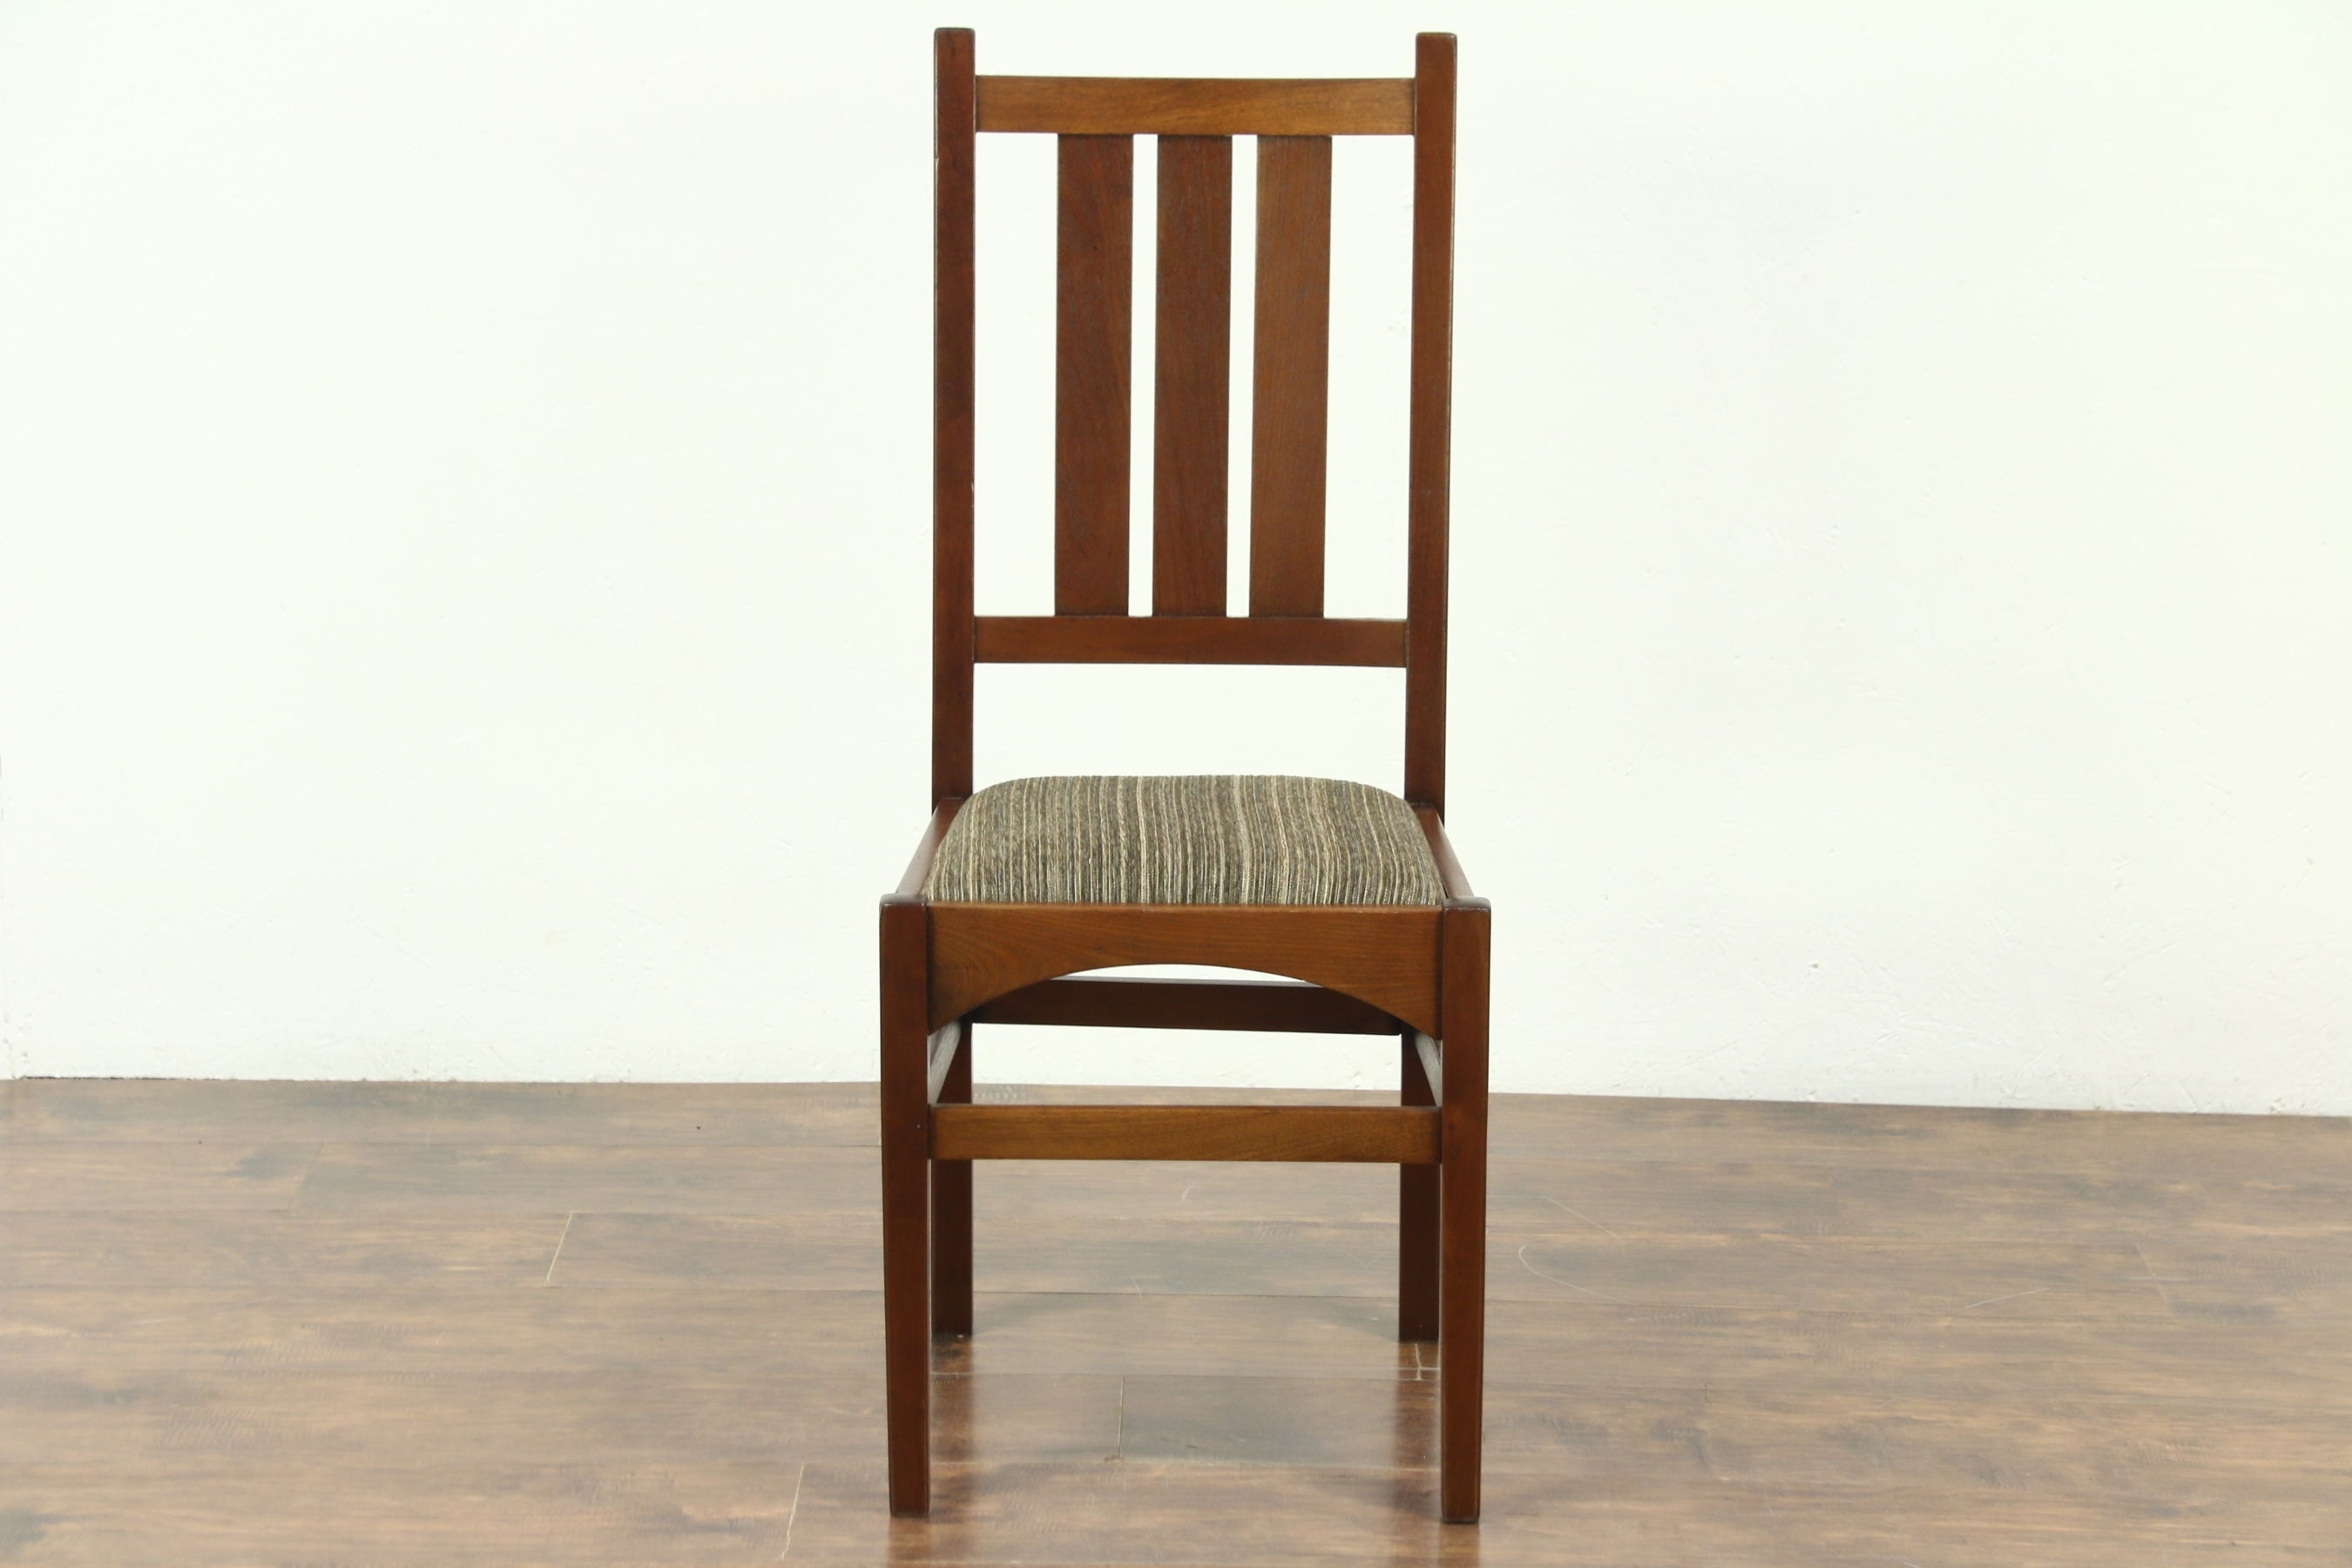 Craftsman Upholstered Side Chairs Within Best And Newest Sold – Arts & Crafts Antique Craftsman Desk Or Arm Chair, New (#7 of 20)